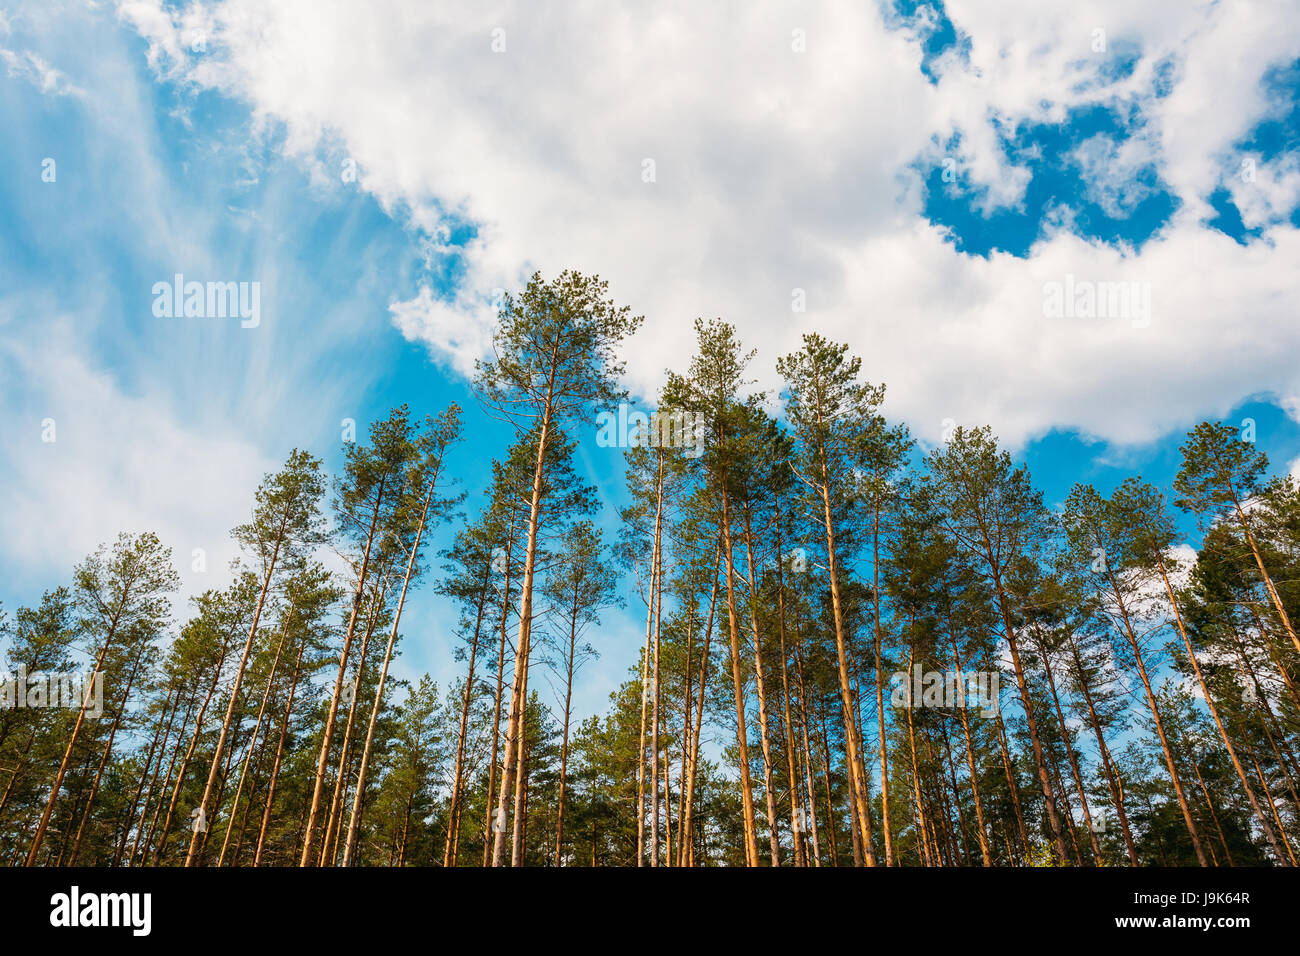 Crowns Treetops Of Tall Thin Slender Evergreen Pines Under Cloudy Spring Summer Blue Sky Welkin Background. - Stock Image